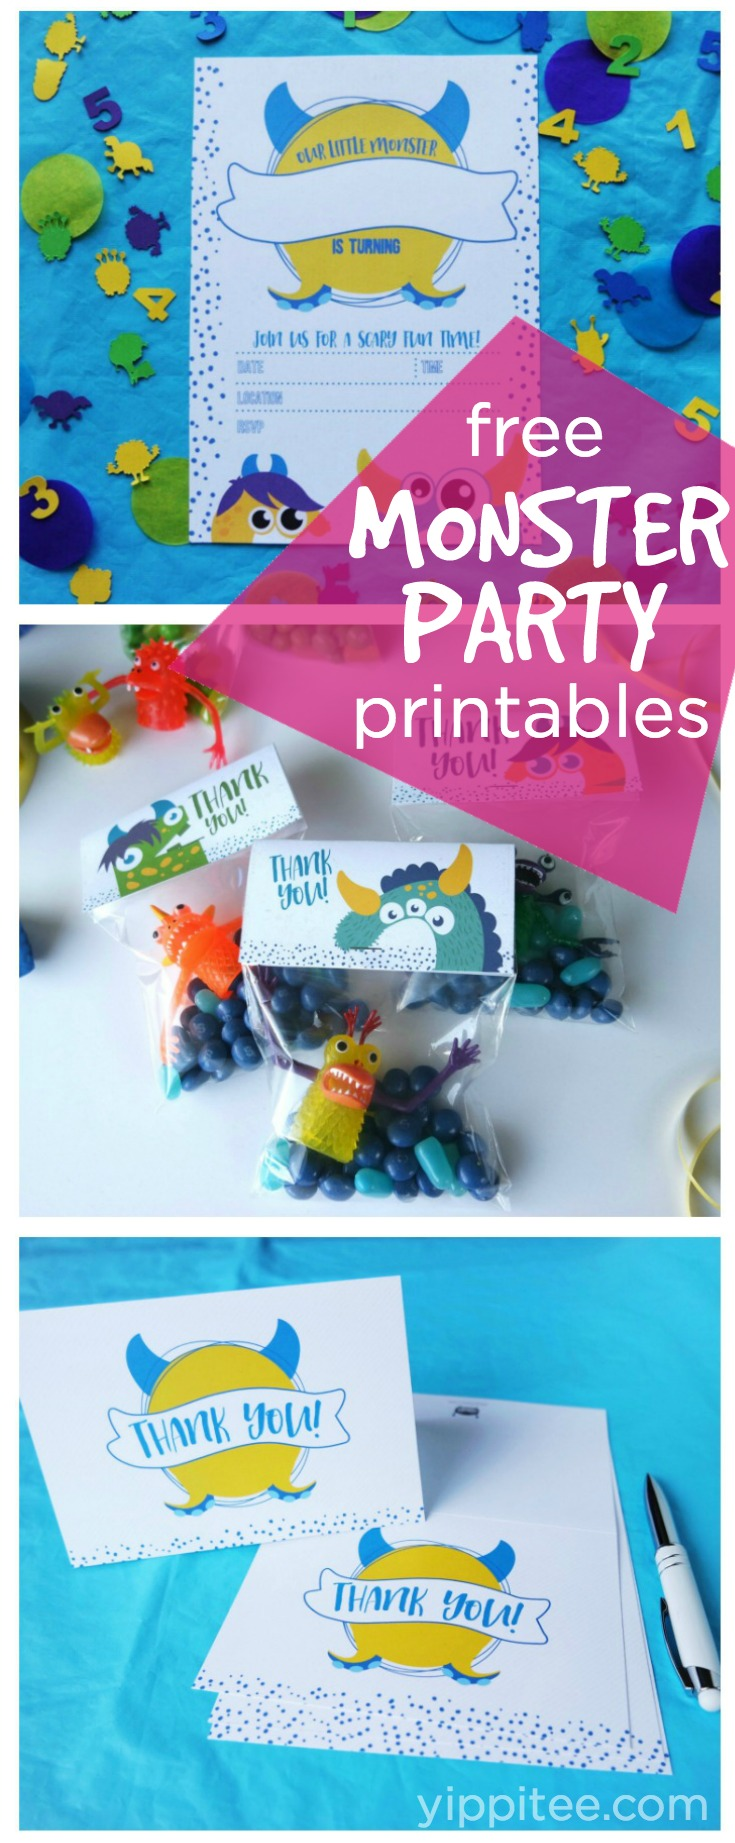 Monster birthday party supplies: 3 free monster party printables including an invite, party favor bag tag, and thank you card to download and print at home.